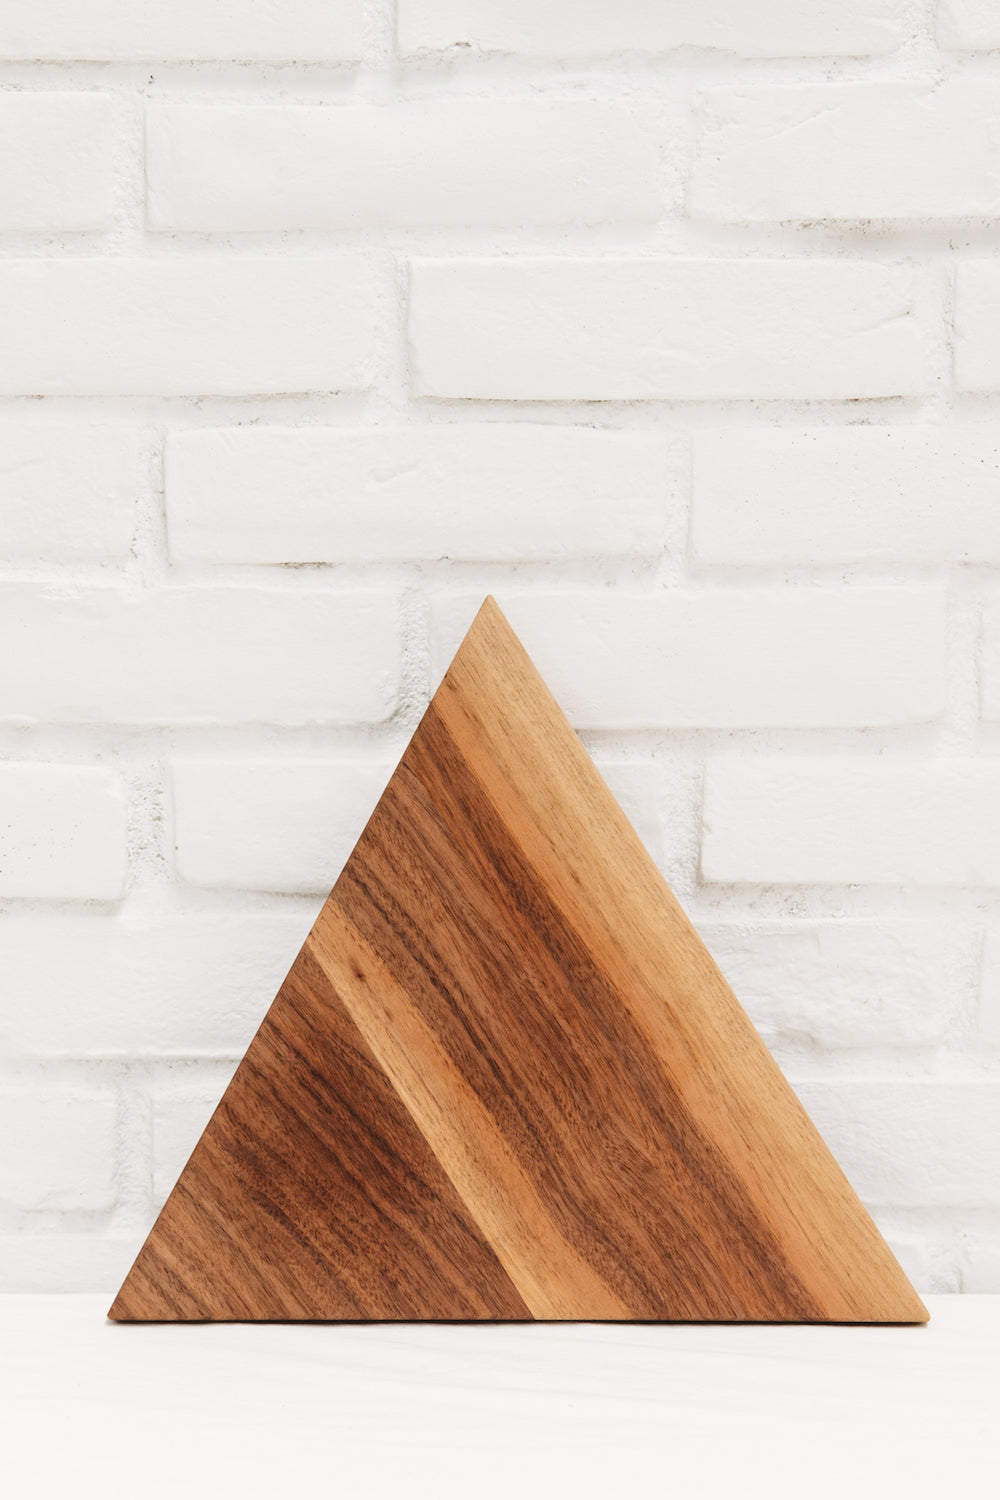 RAEL MADE Triangle Cutting Board / Bread or Cheese Board